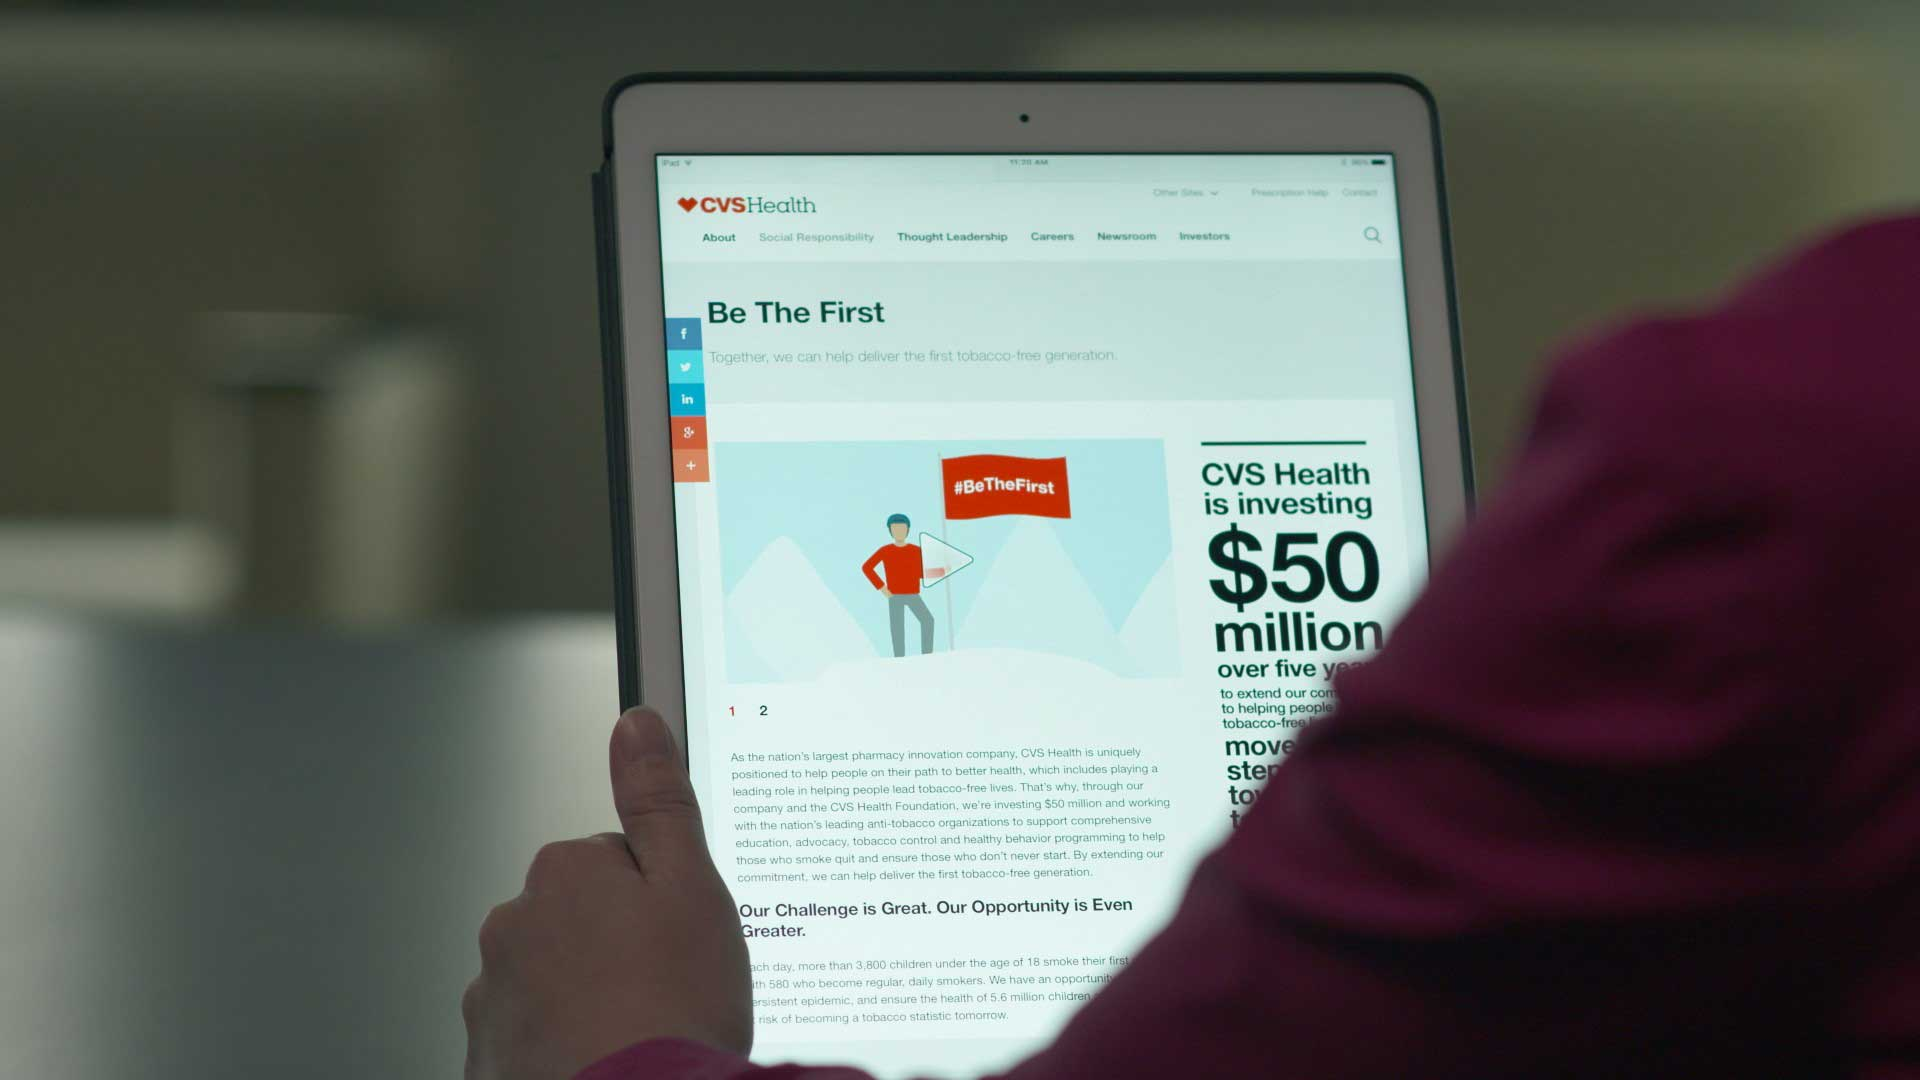 Visit www.cvshealth.com/bethefirst for more information on CVS Health's expanded commitment to tobacco-free living.